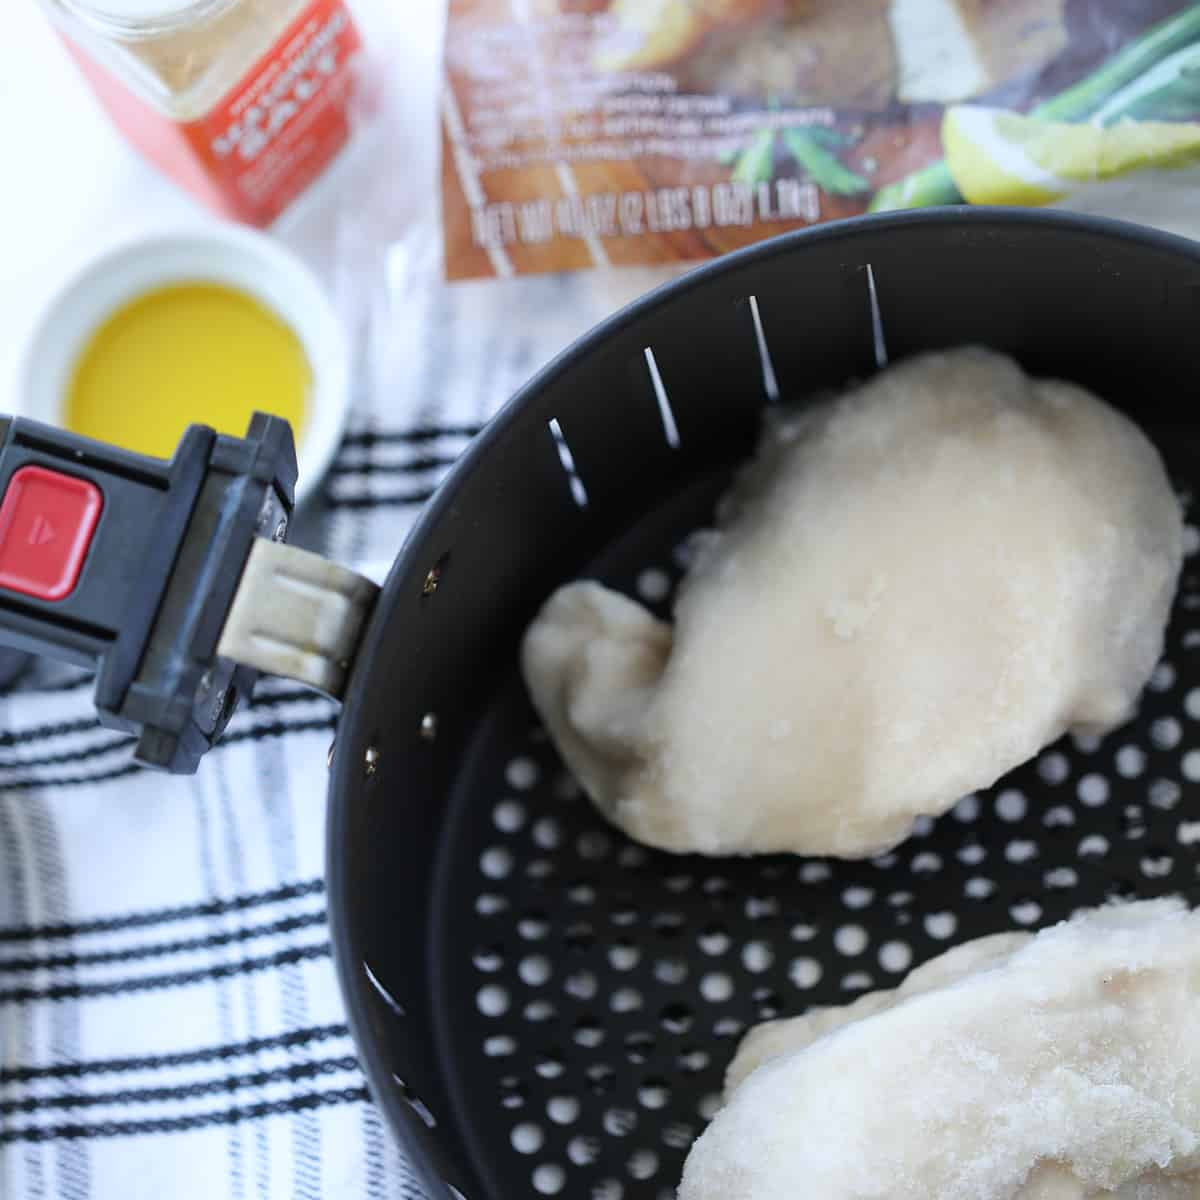 cooking frozen chicken breast in air fryer uses raw meat, olive oil, and seasoning. Photo is of all ingredients before cooking.